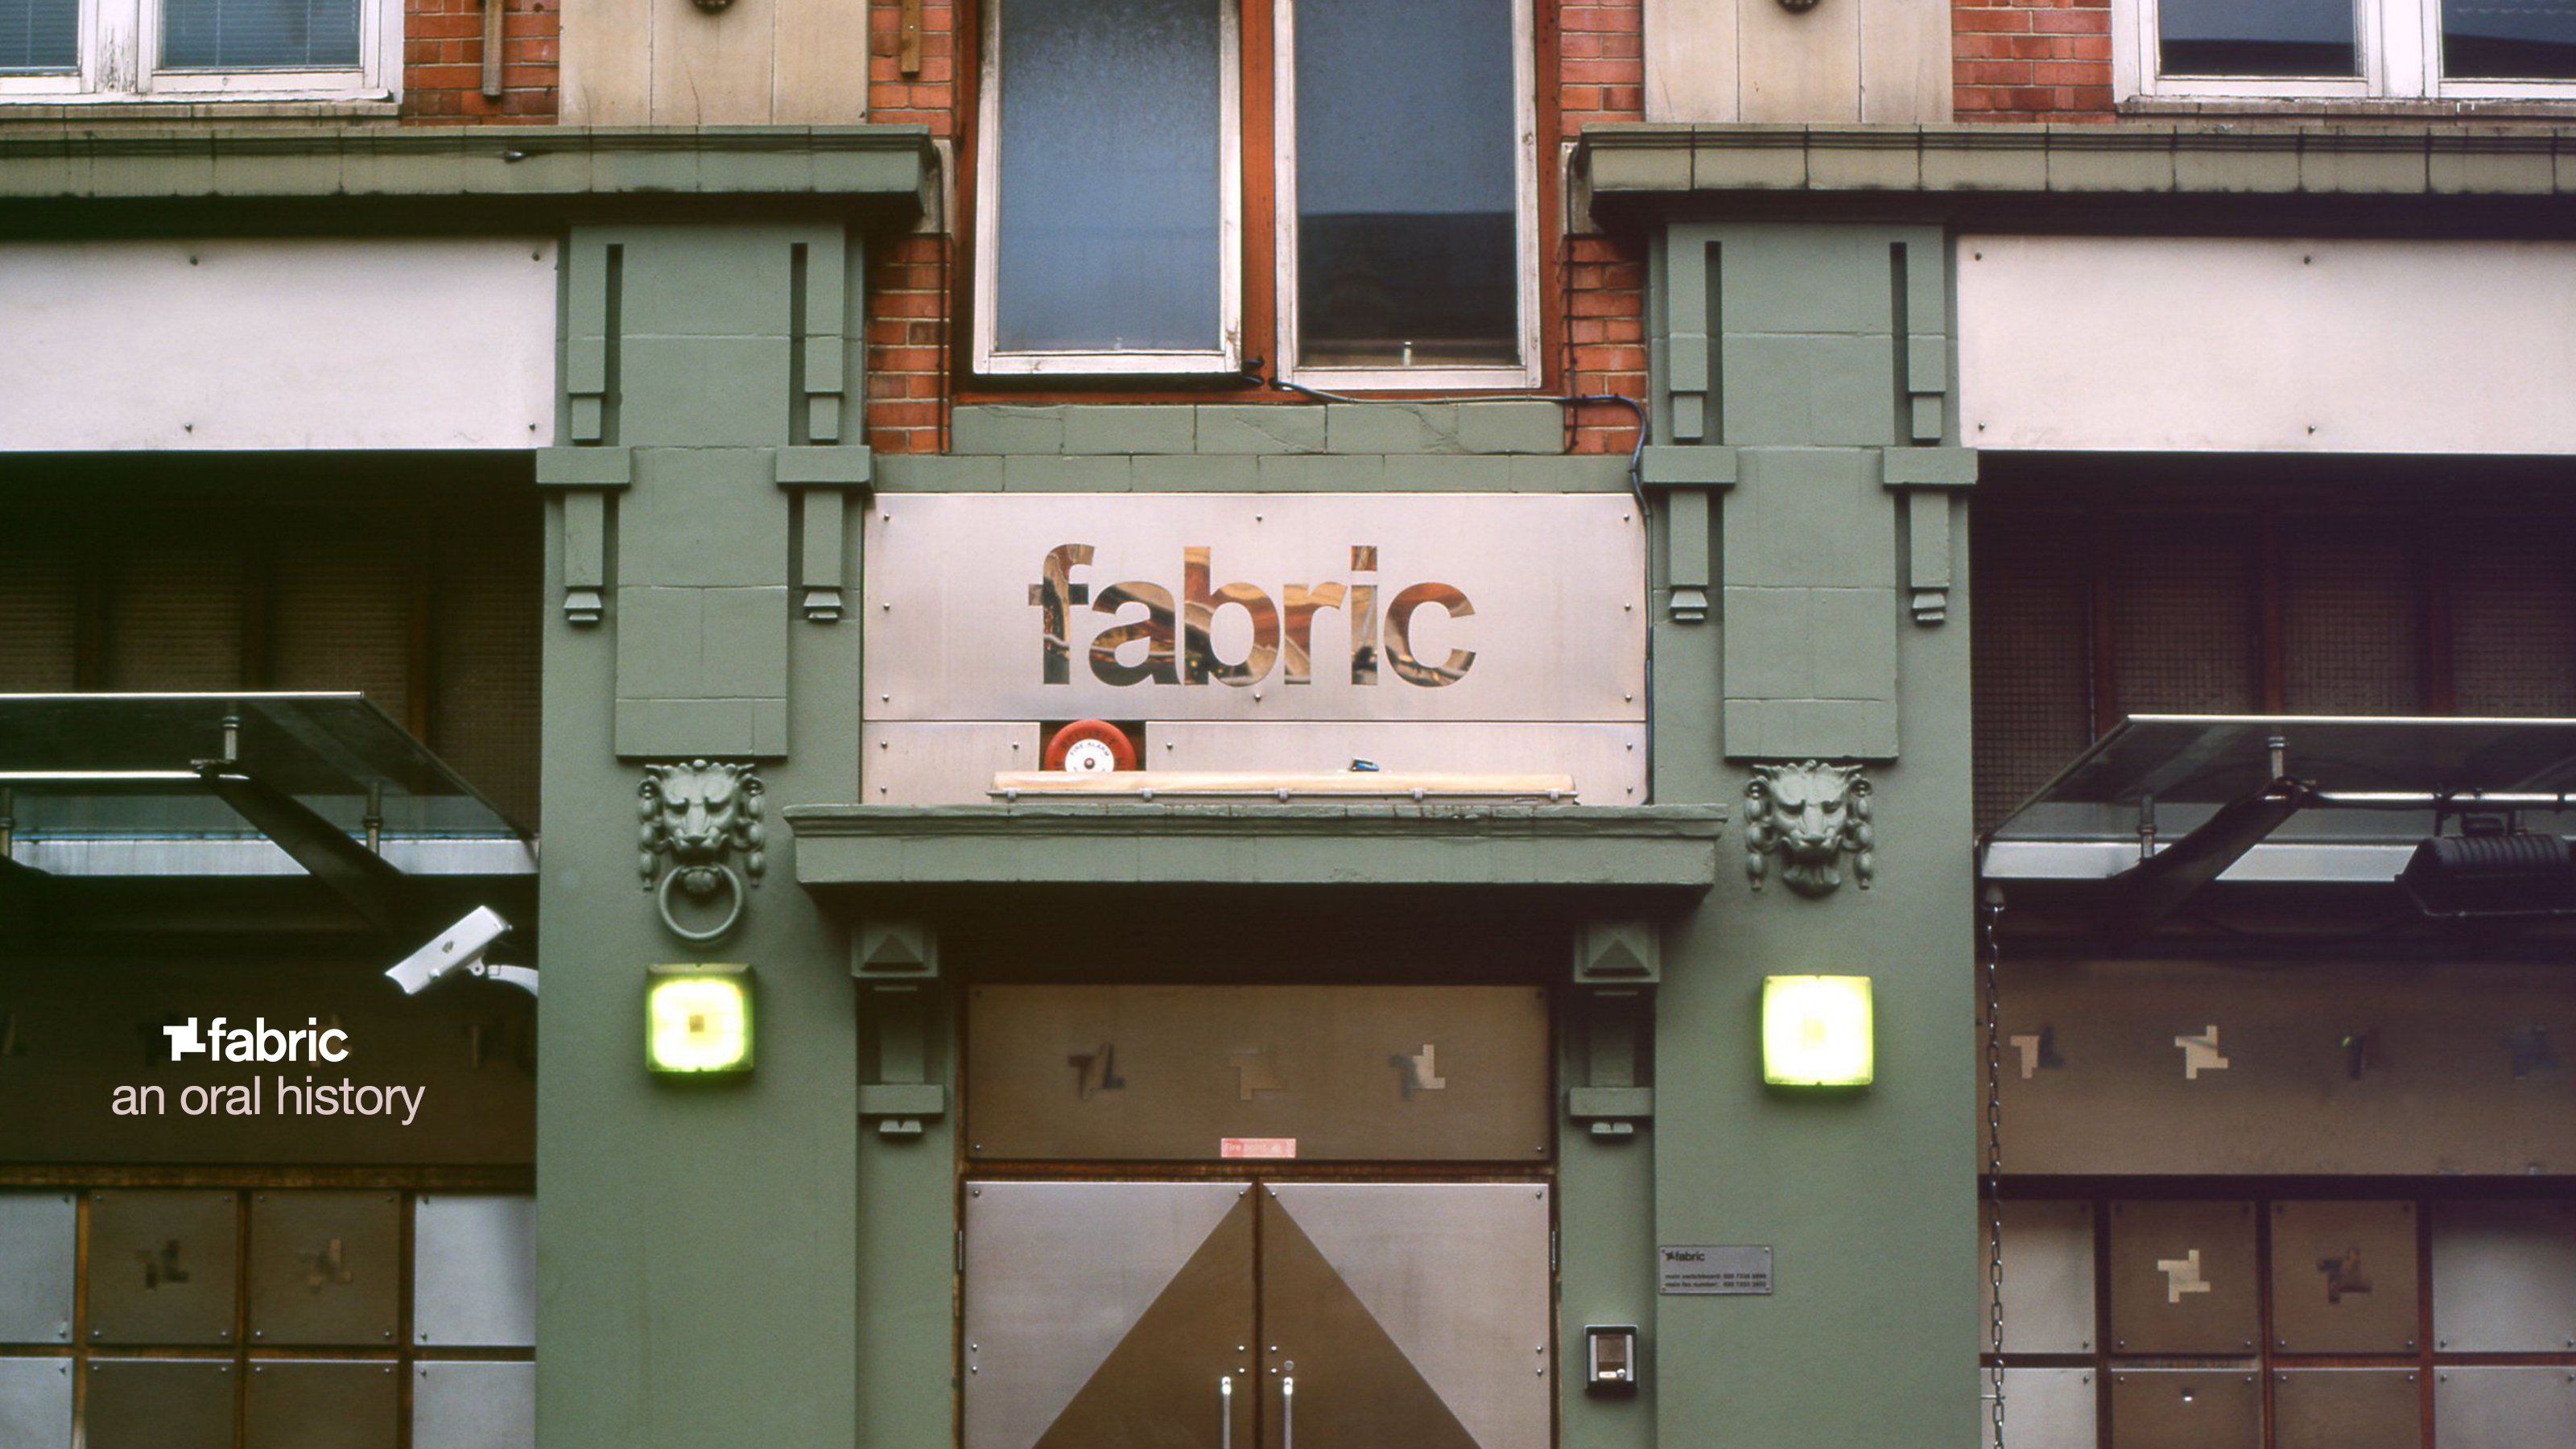 fabric: An oral history